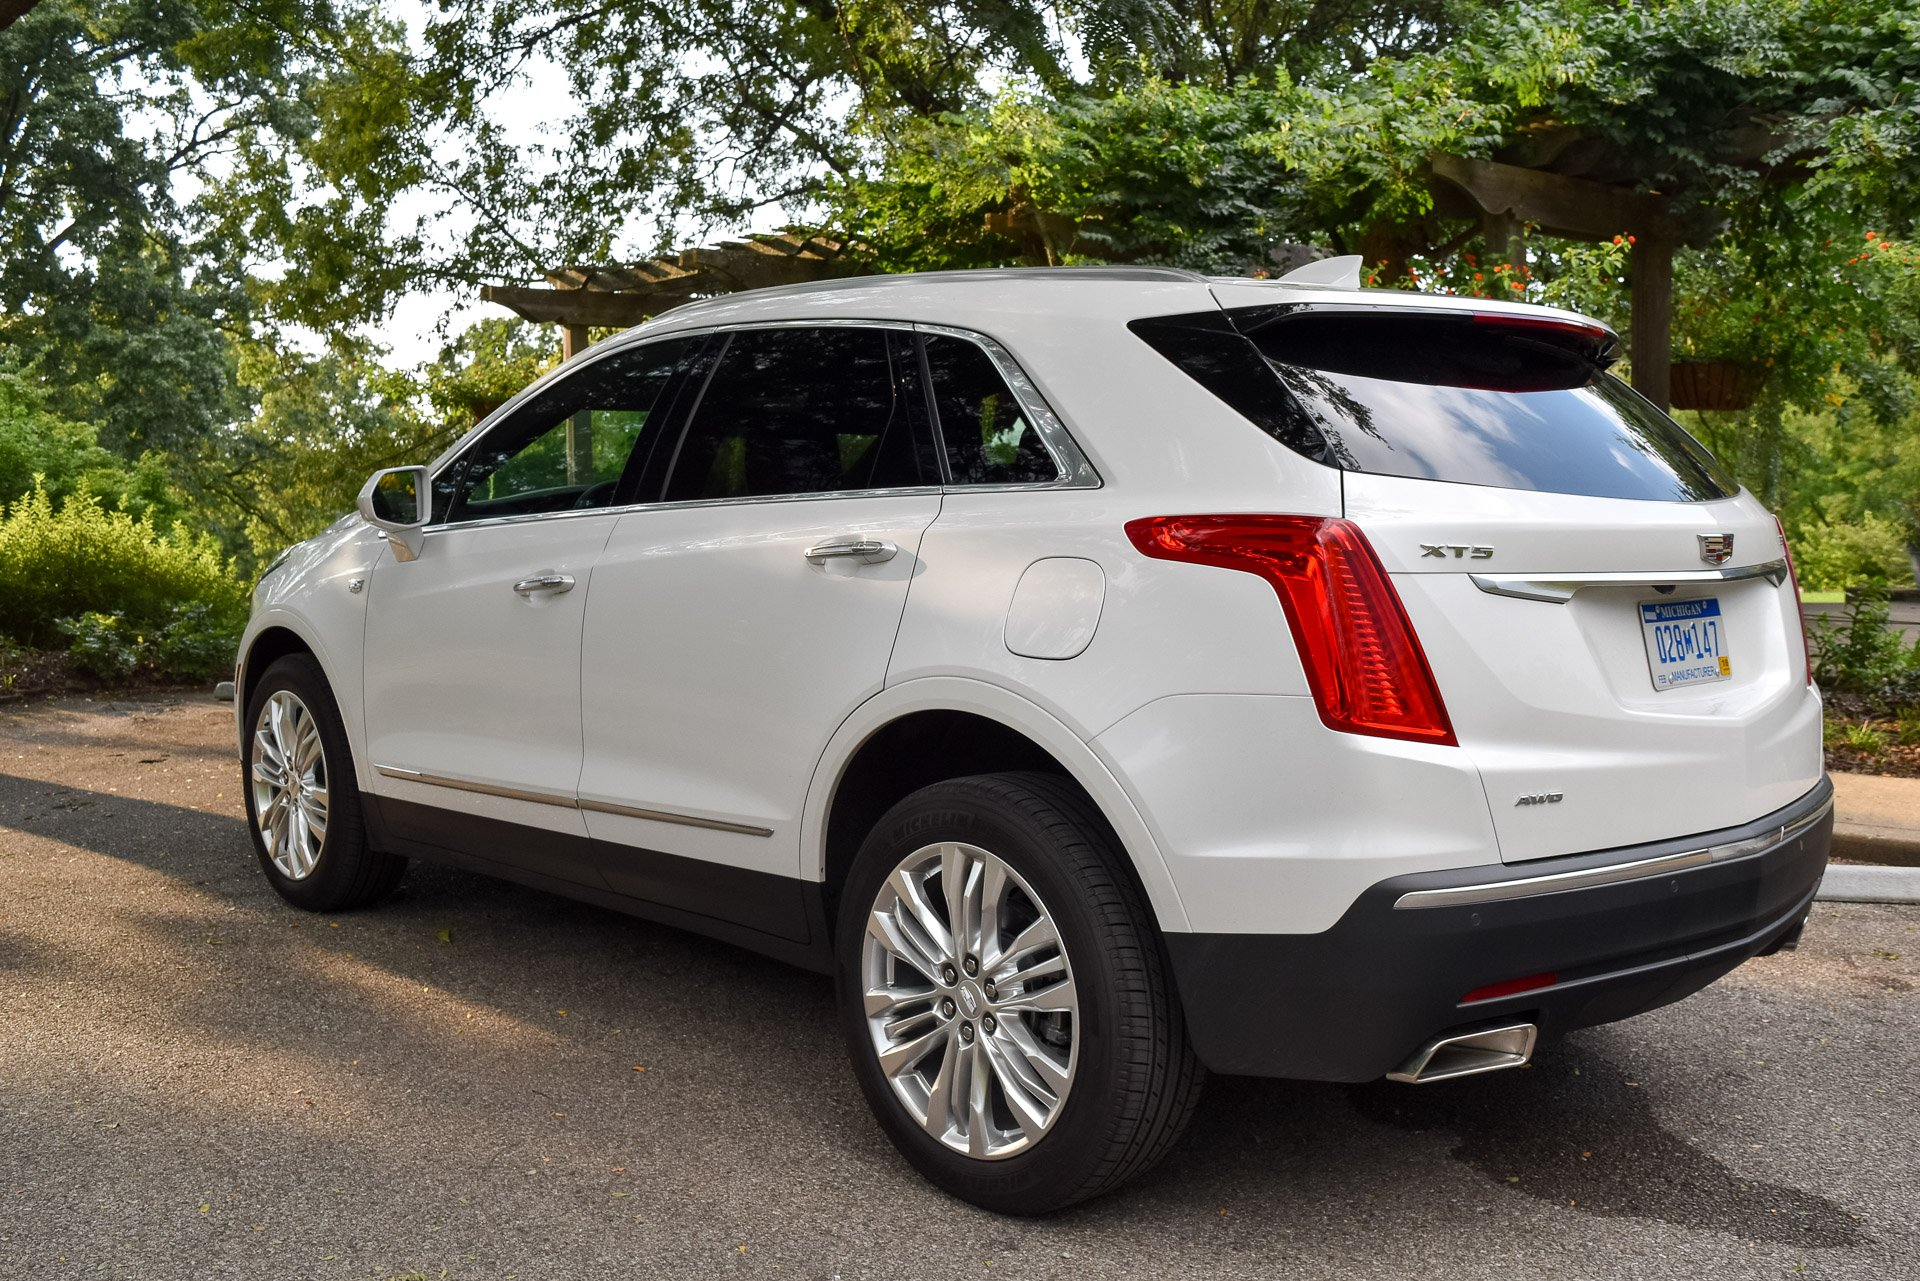 Review: 2017 Cadillac XT5 - 95 Octane